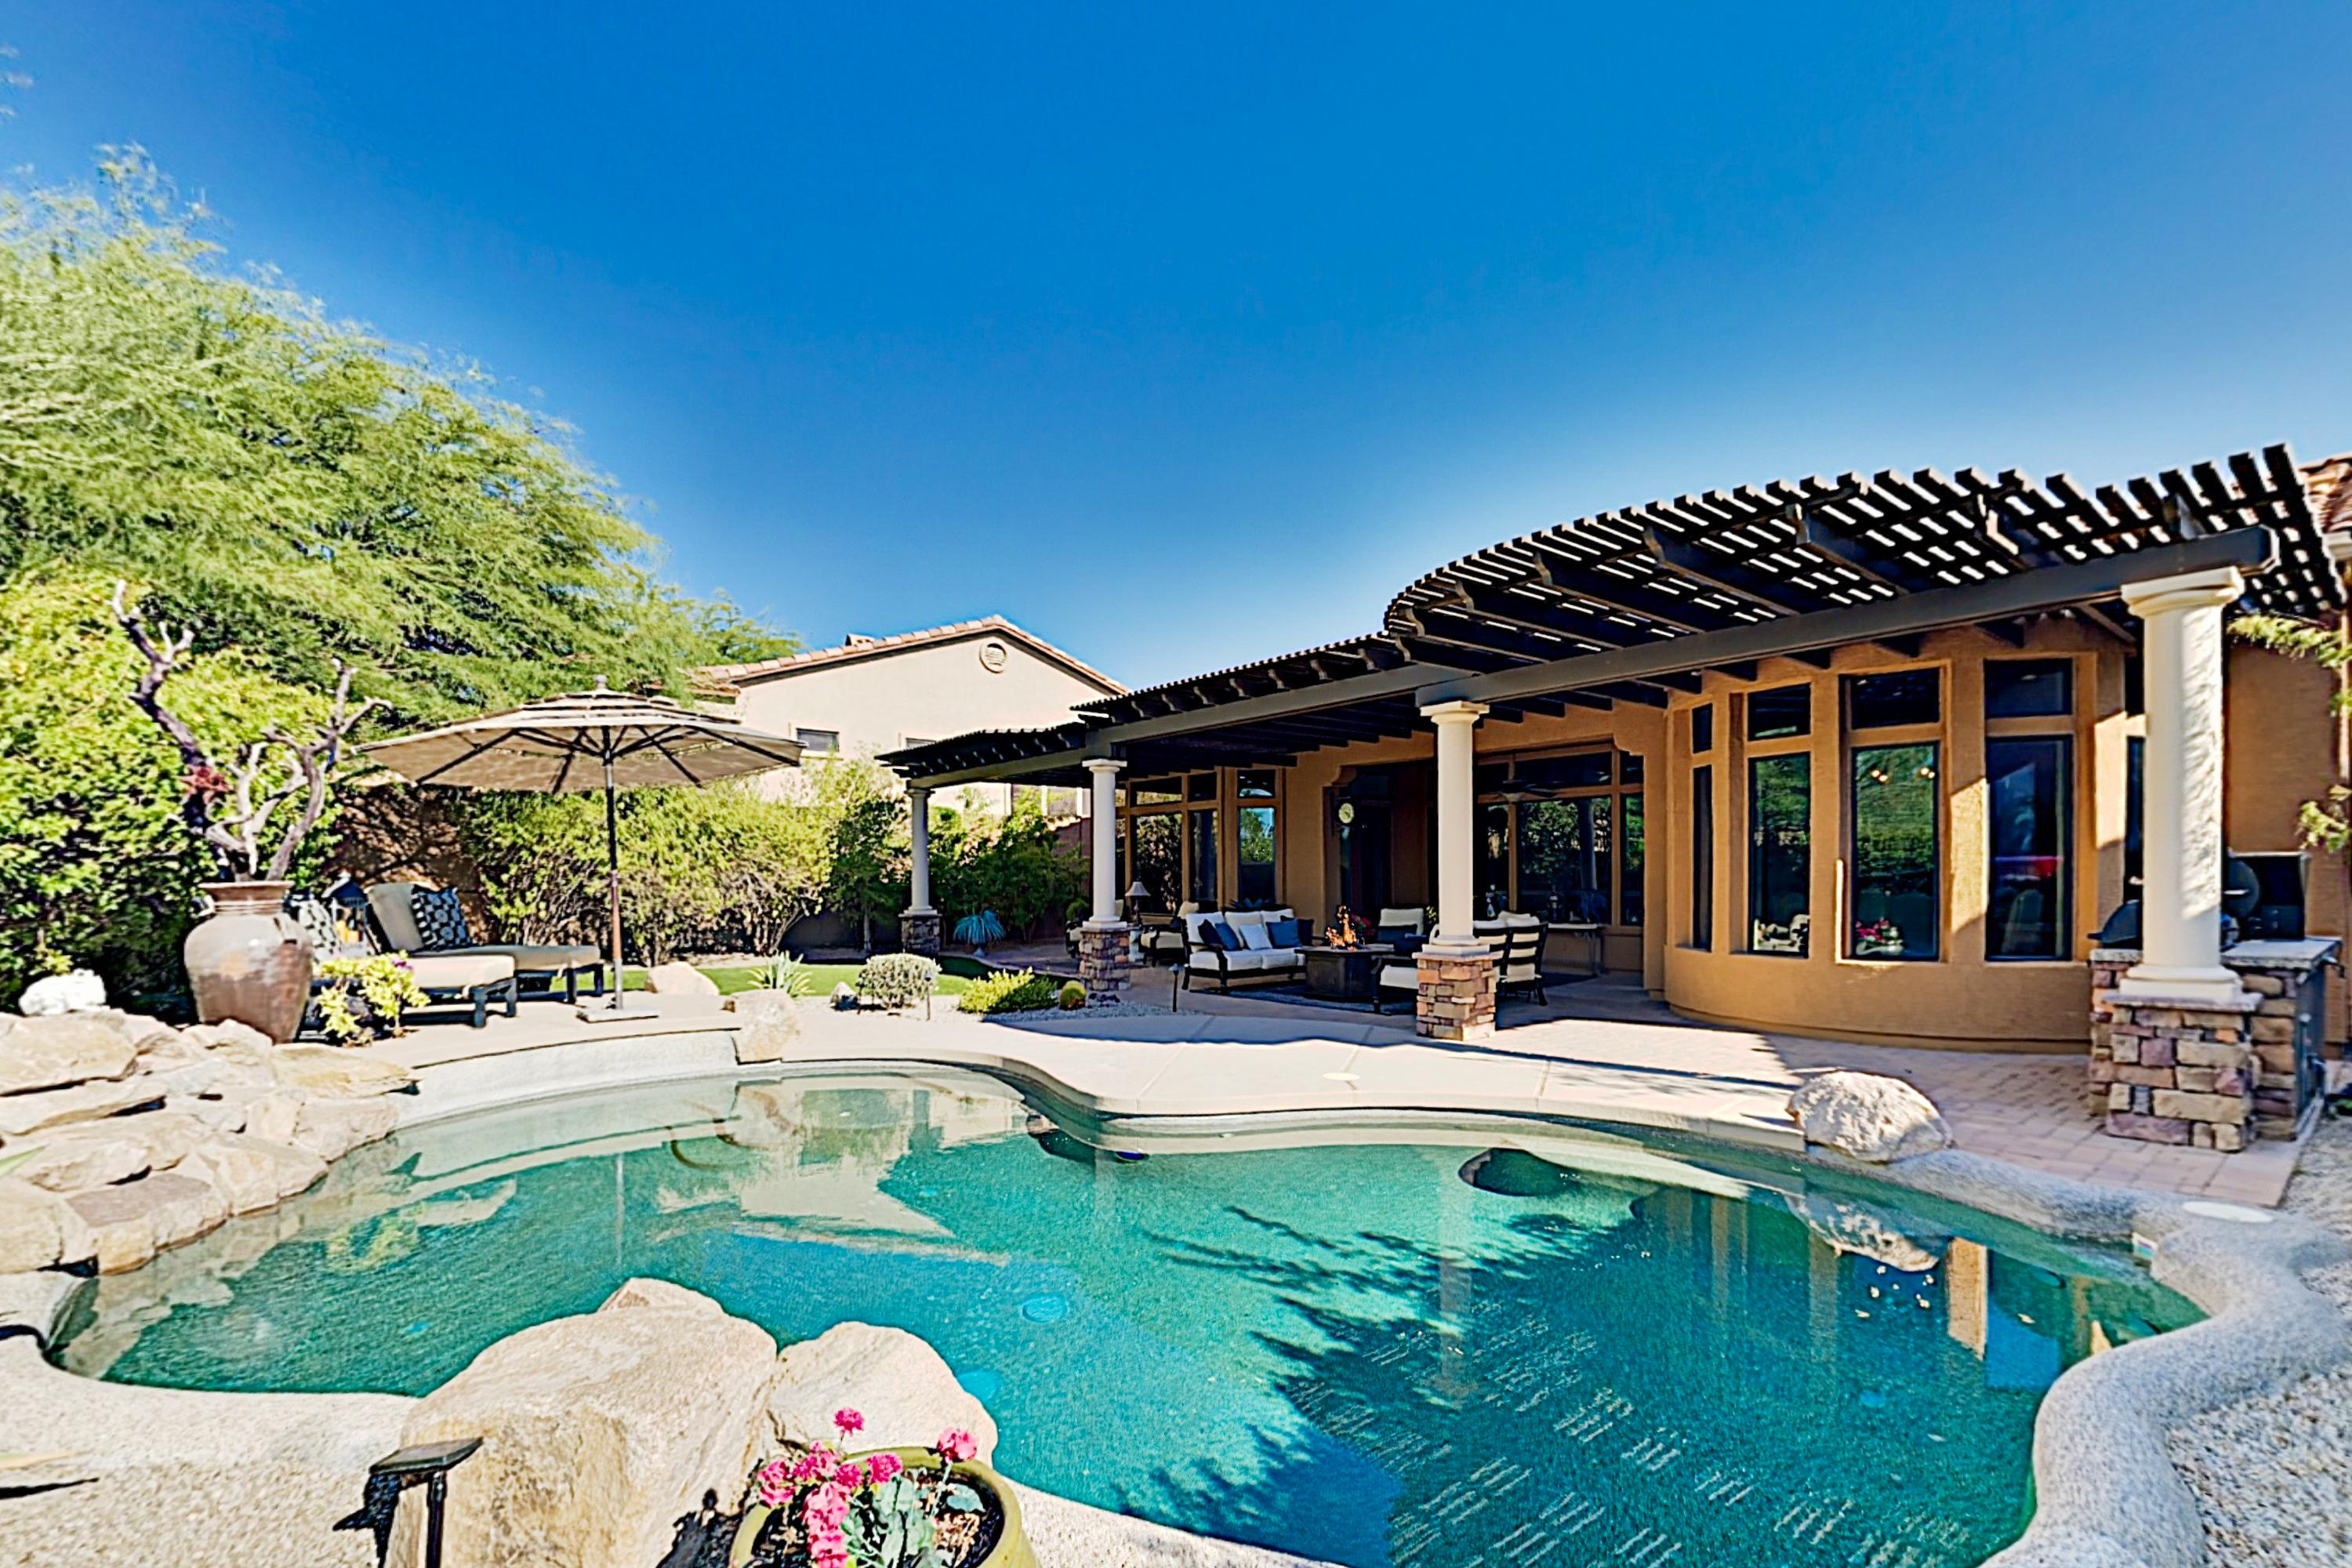 Property Image 1 - LAVISH LAS SENDAS RETREAT WITH OUTDOOR LIVING